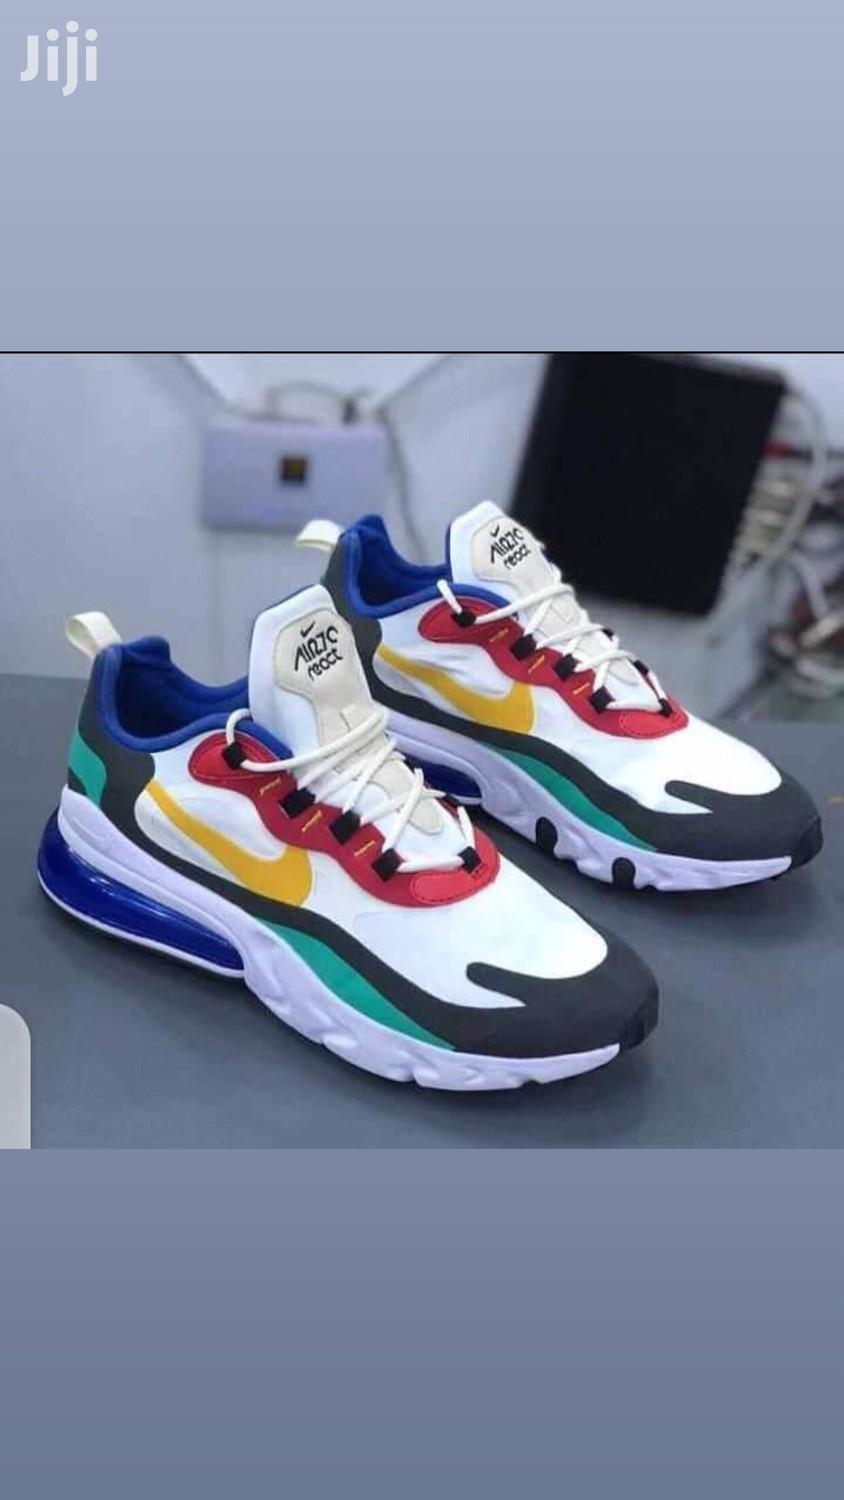 Nike 720 Sneakers in All Sizes